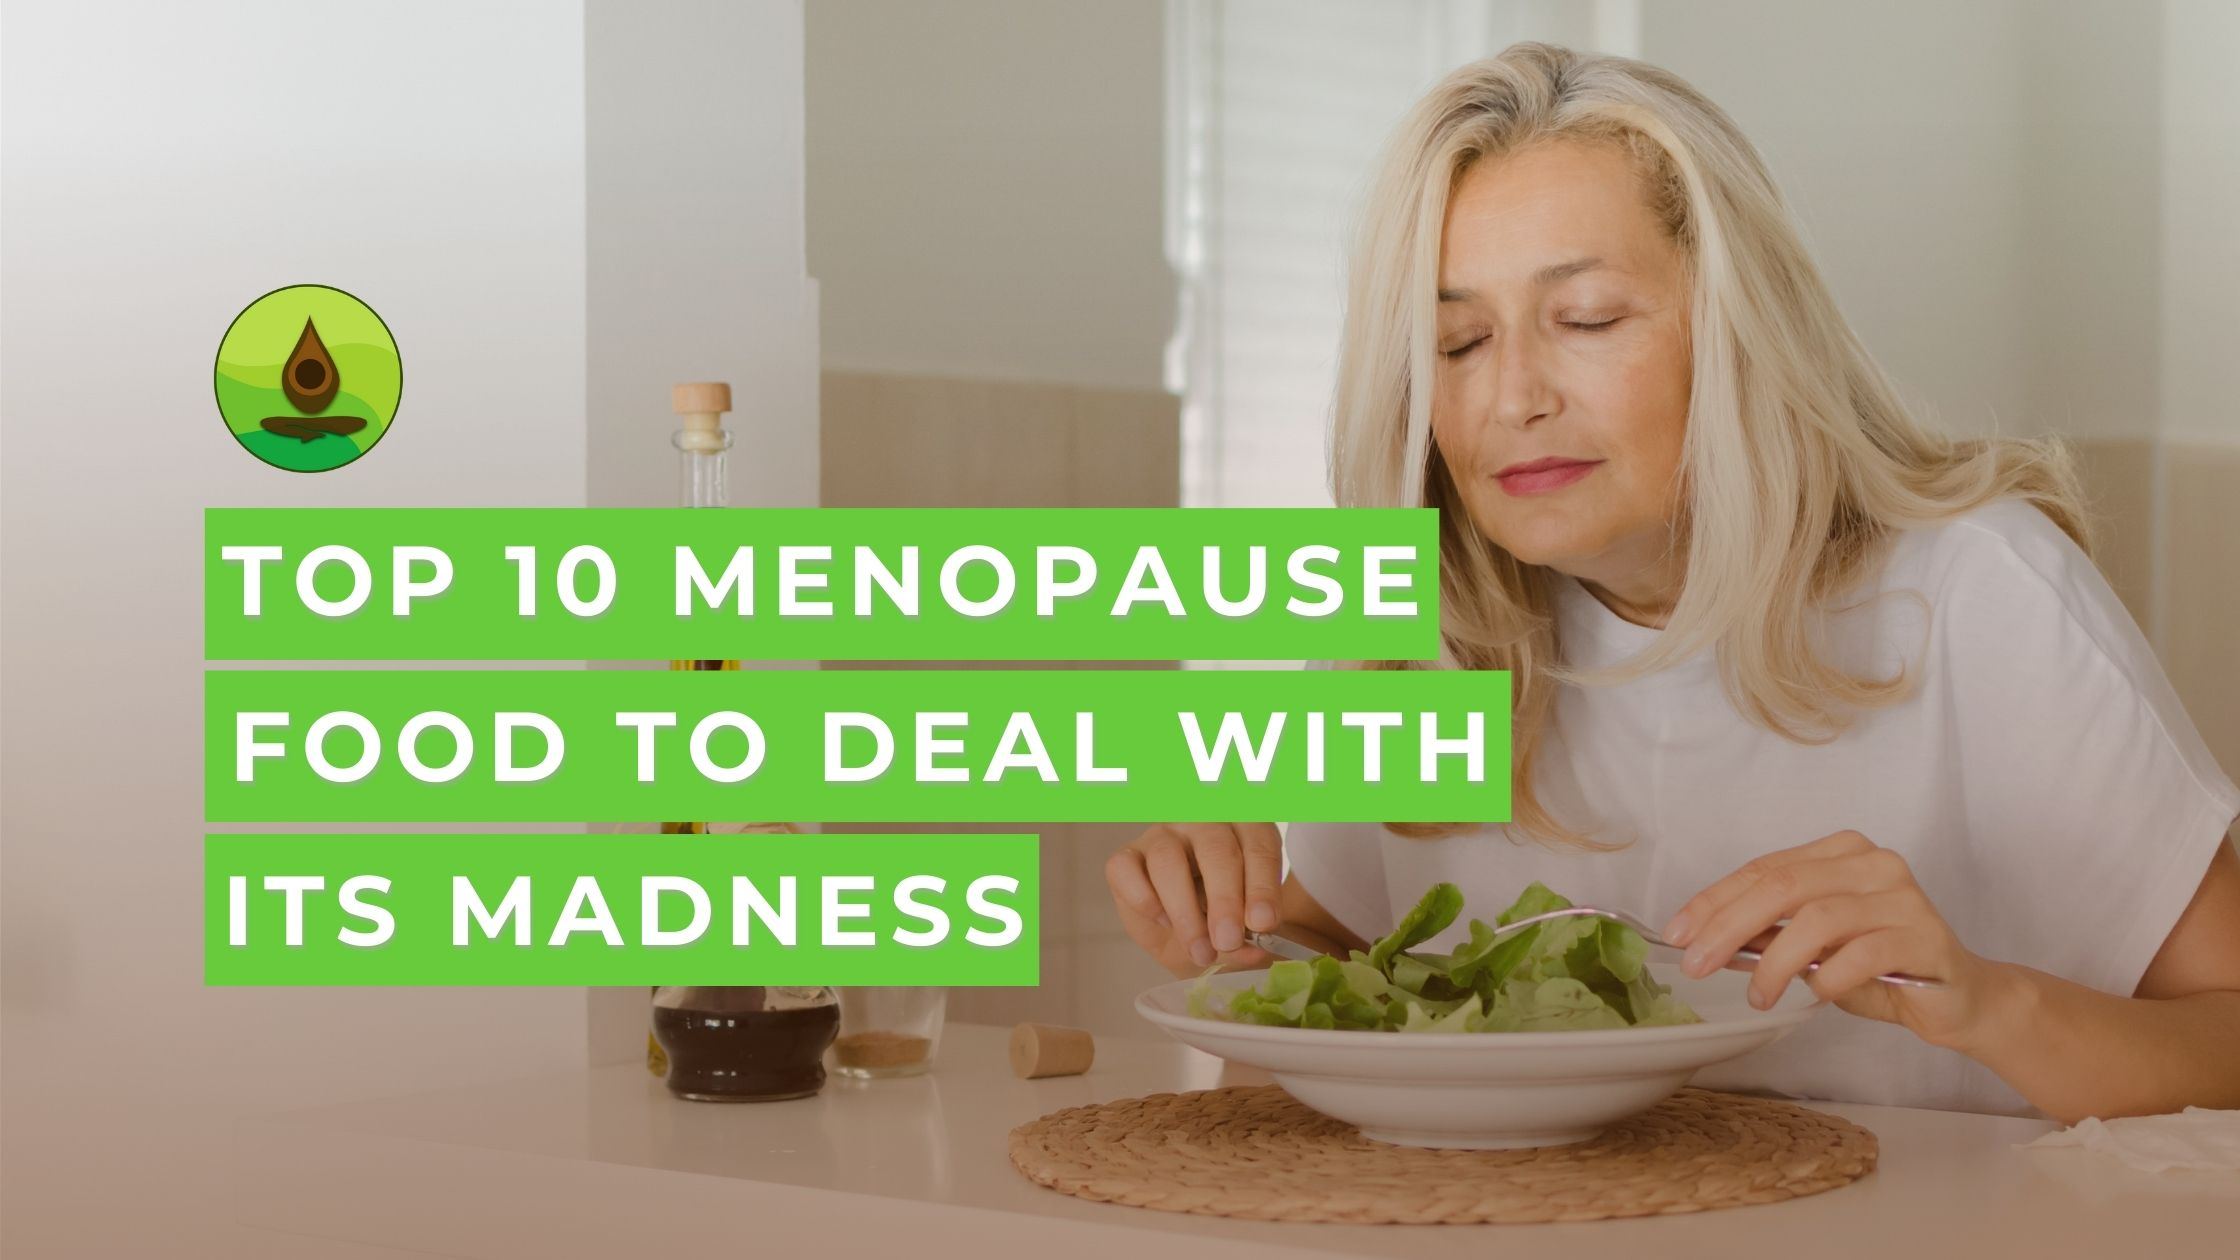 menopause foods that help dealing with its symptoms